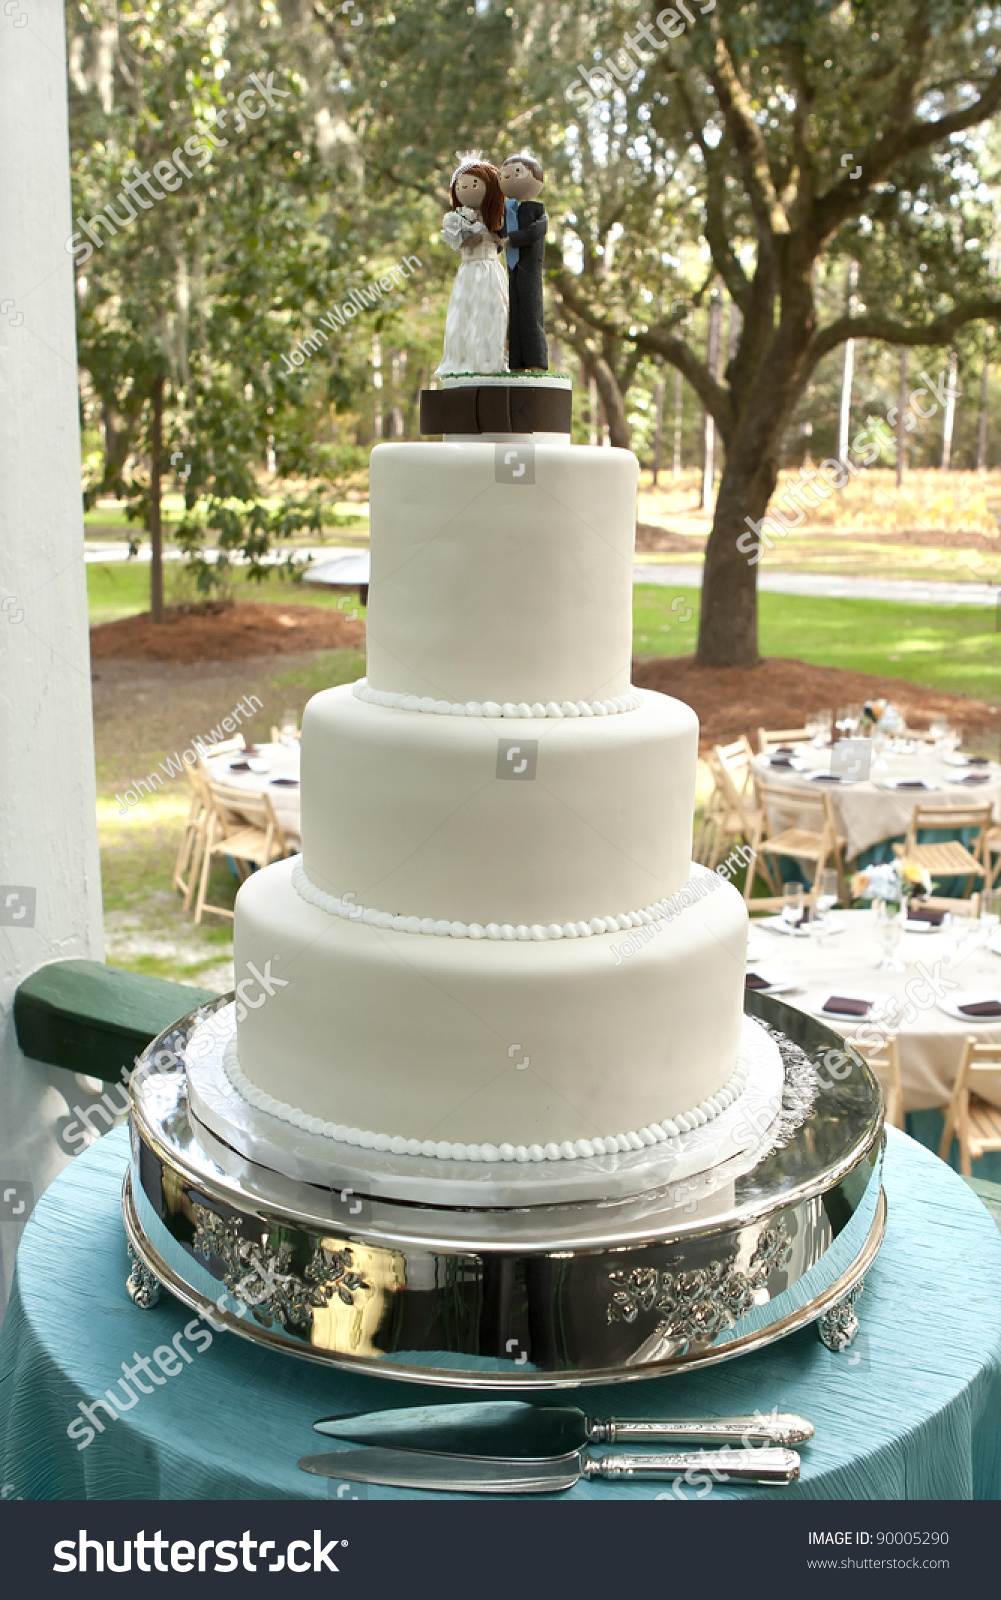 White Wedding Cake On Silver Tray At Outside Reception Stock Photo